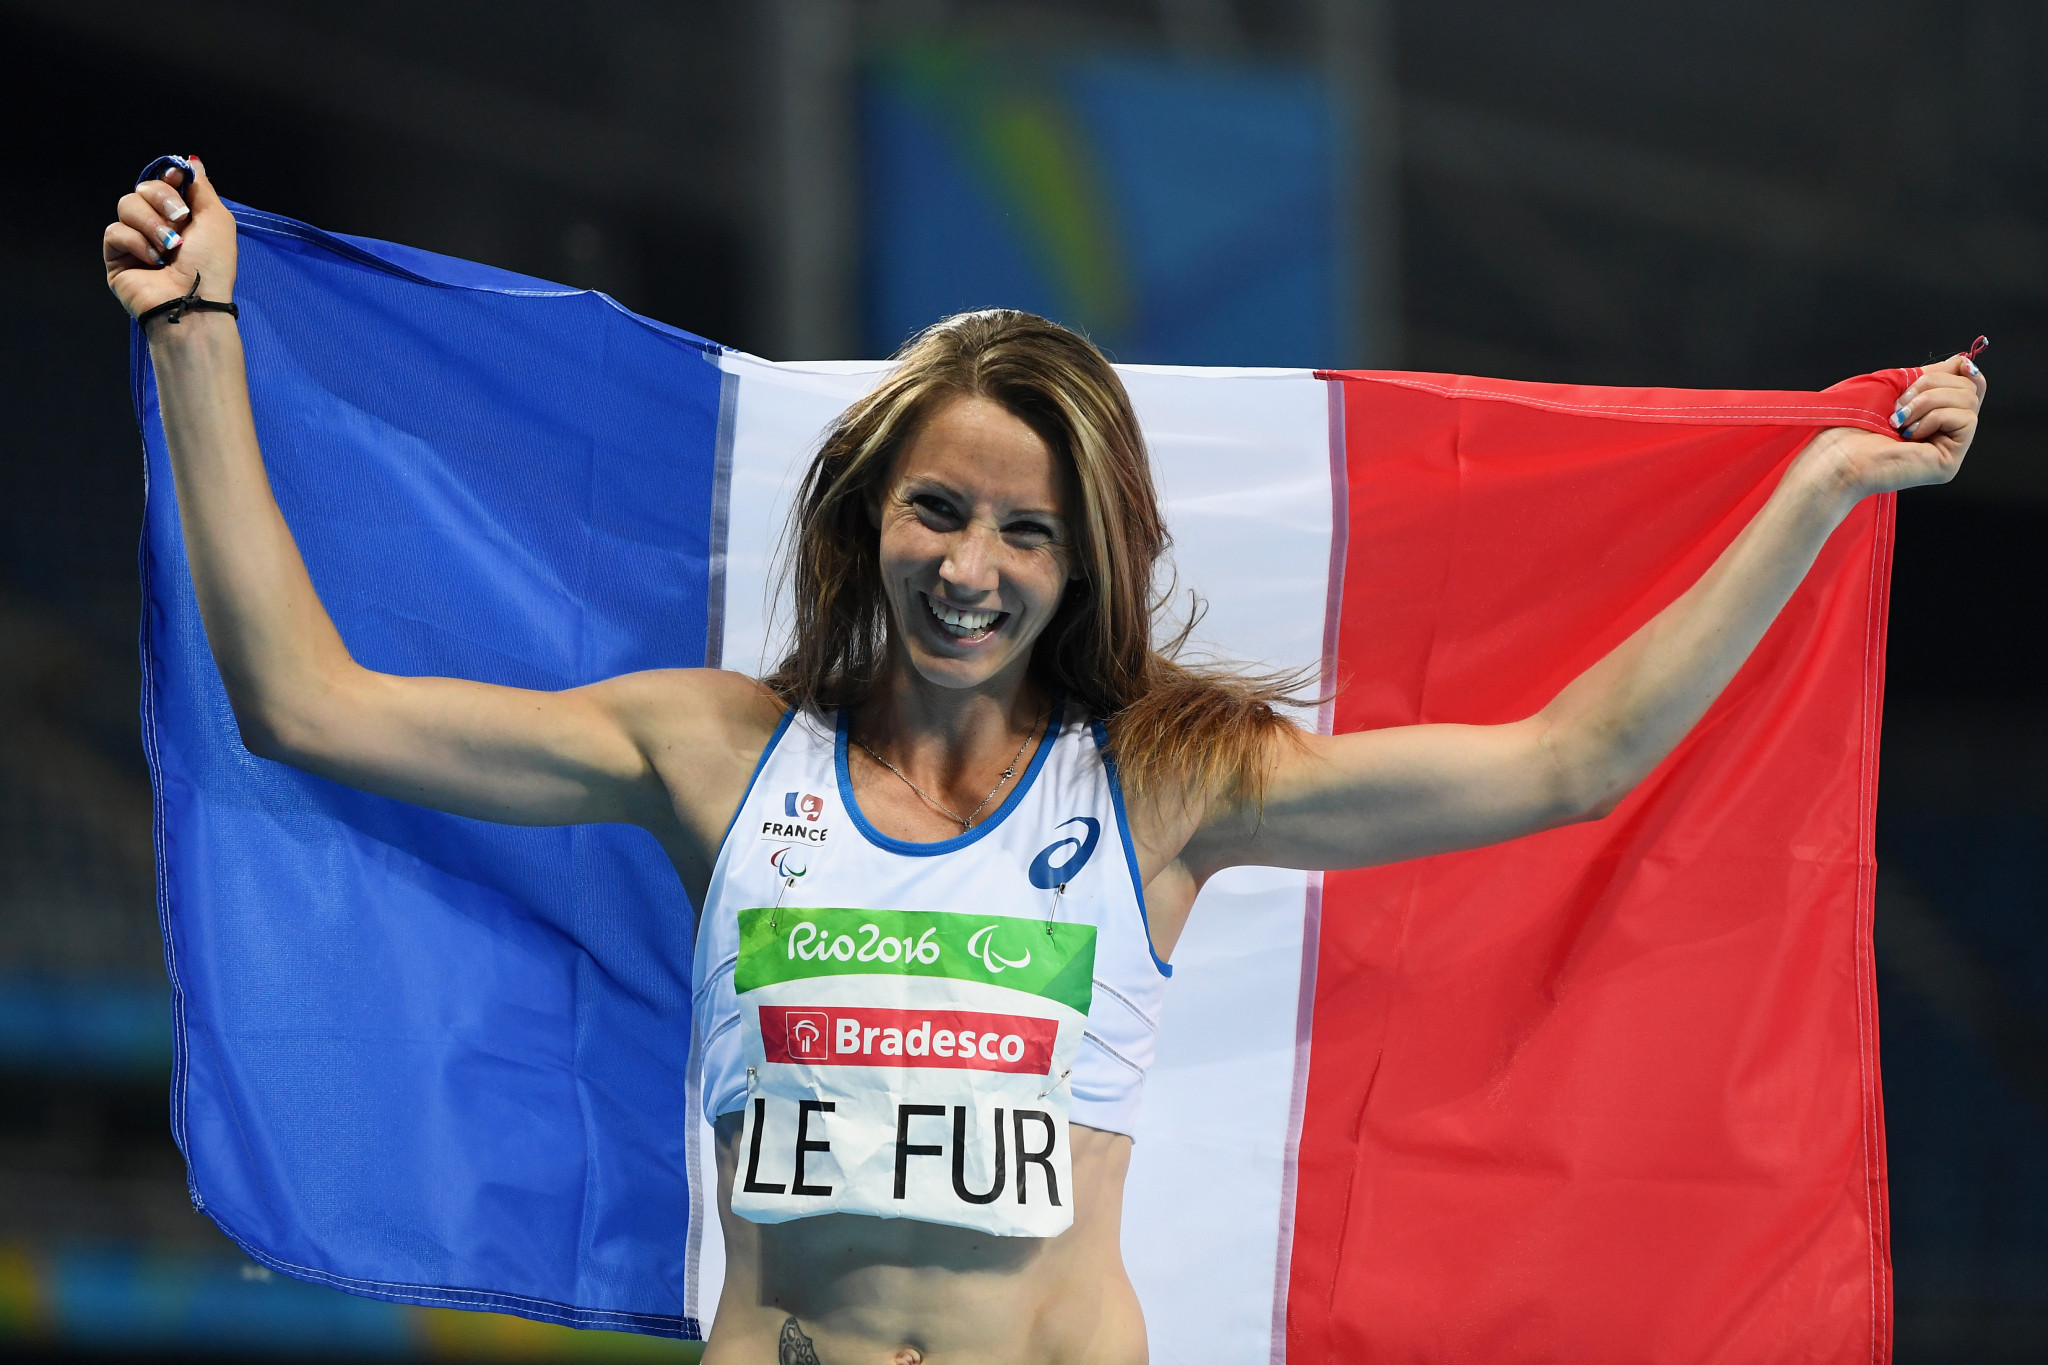 Paralympic champion Le Fur wins long jump at World Para Athletics Grand Prix